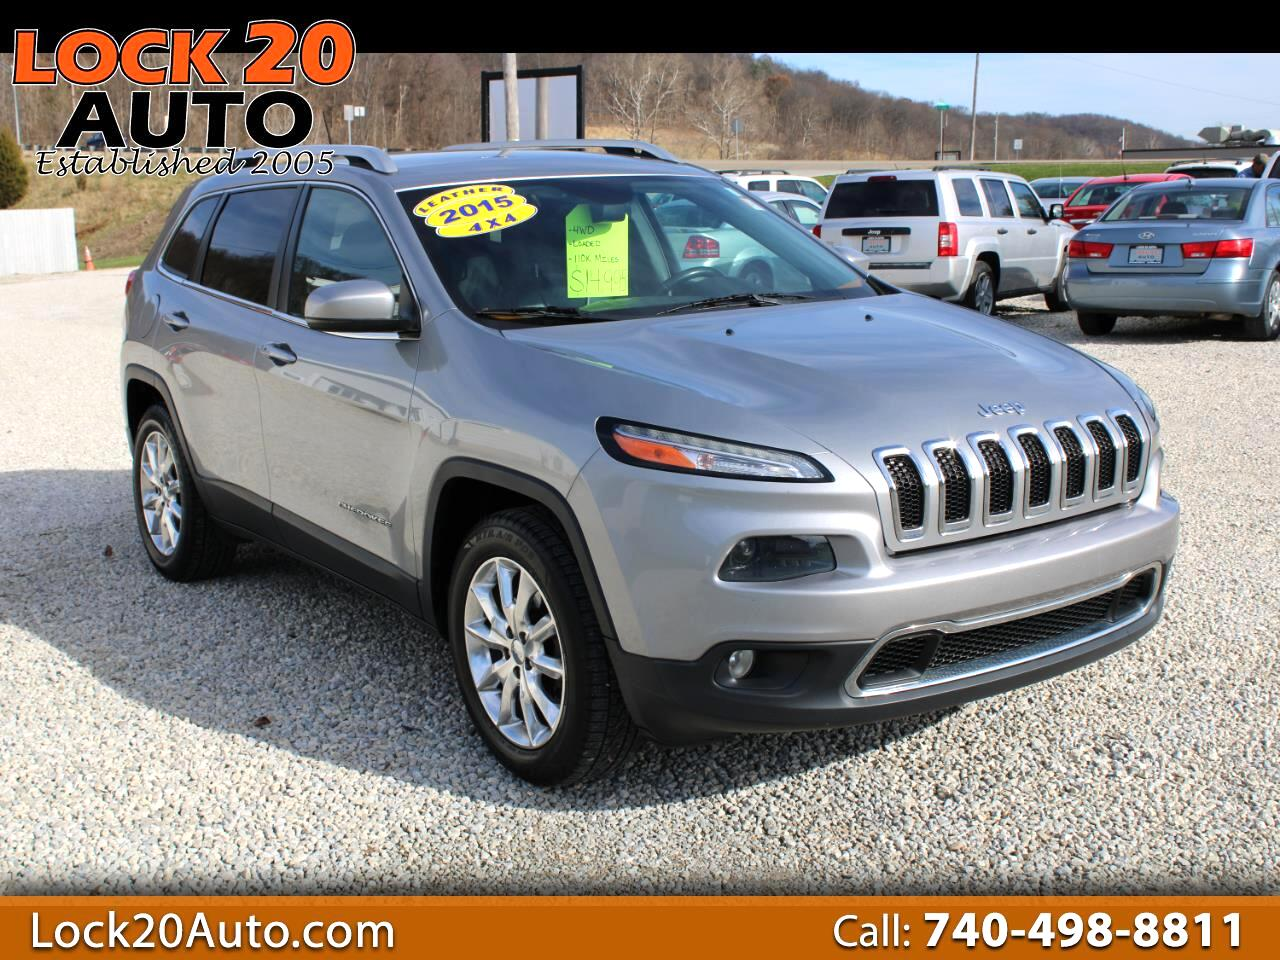 Jeep Cherokee 4dr Limited 4WD 2015